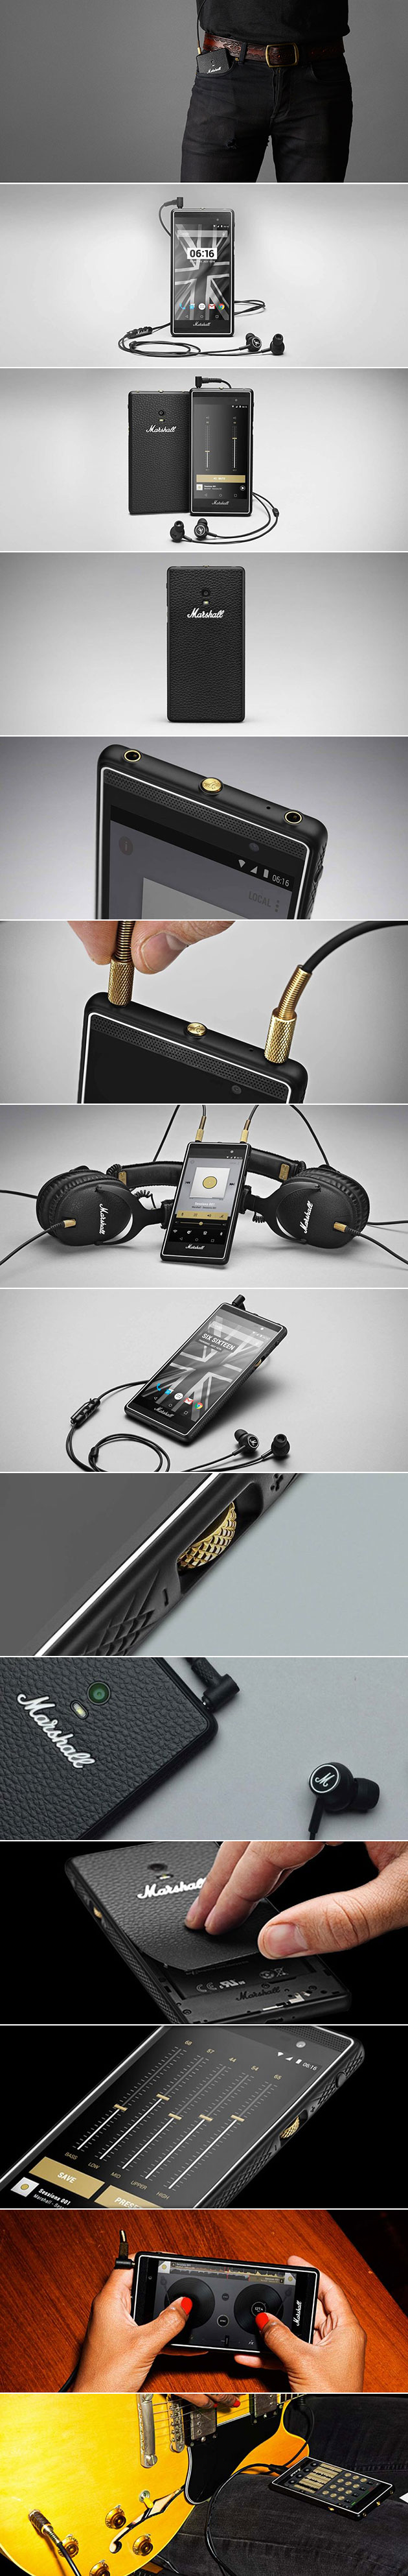 Marshall London Smartphone